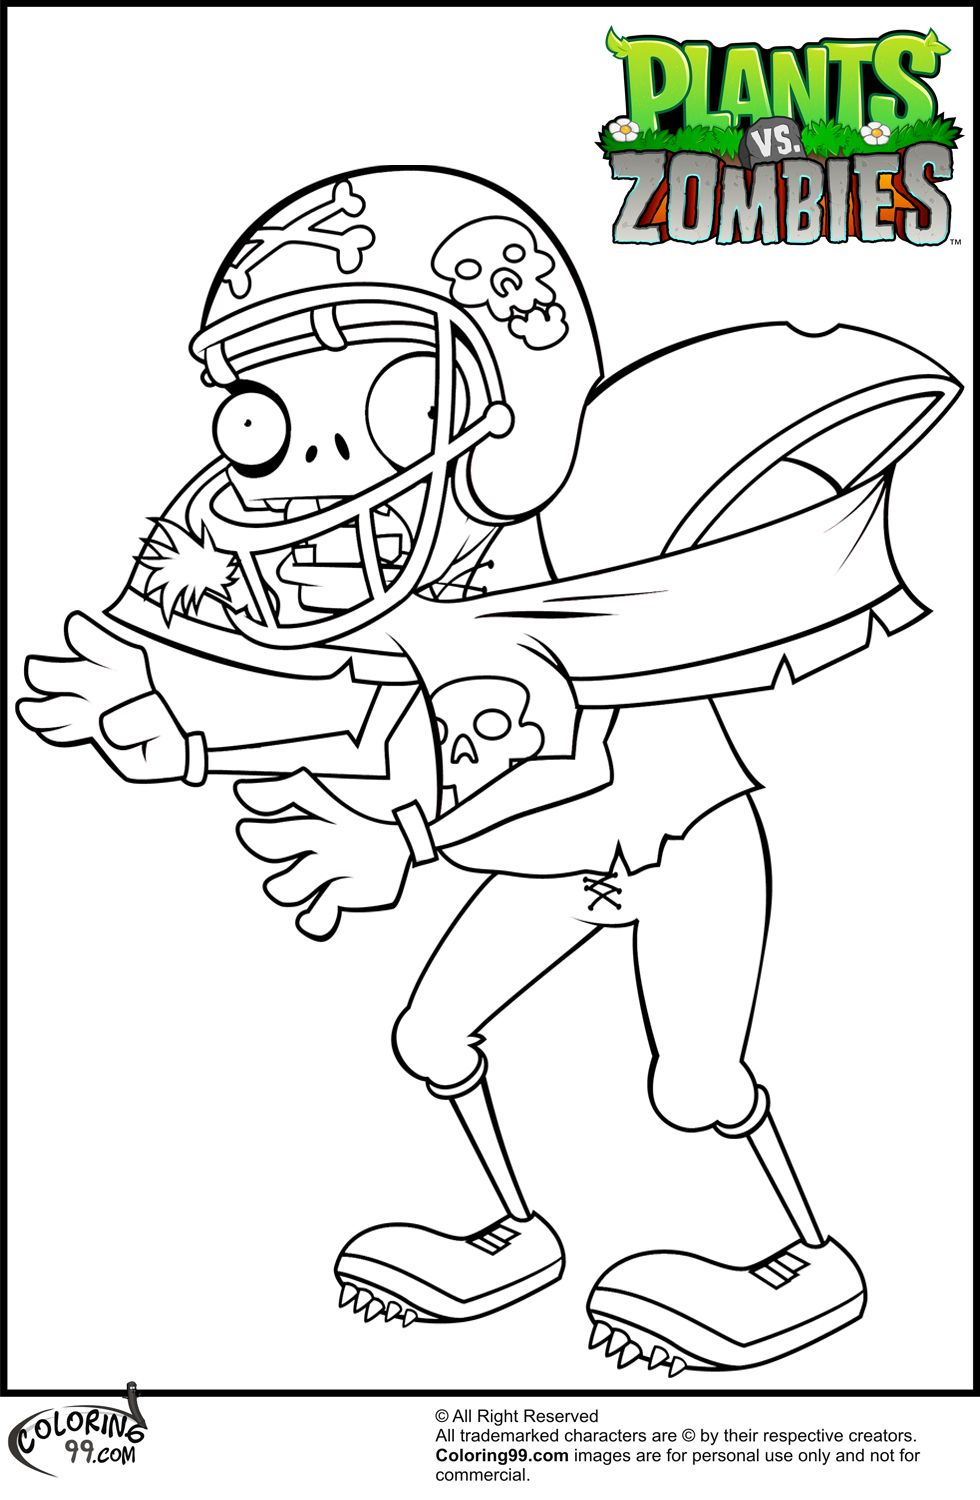 The zombie apocalypse coloring book - Plants Vs Zombies Coloring Pages